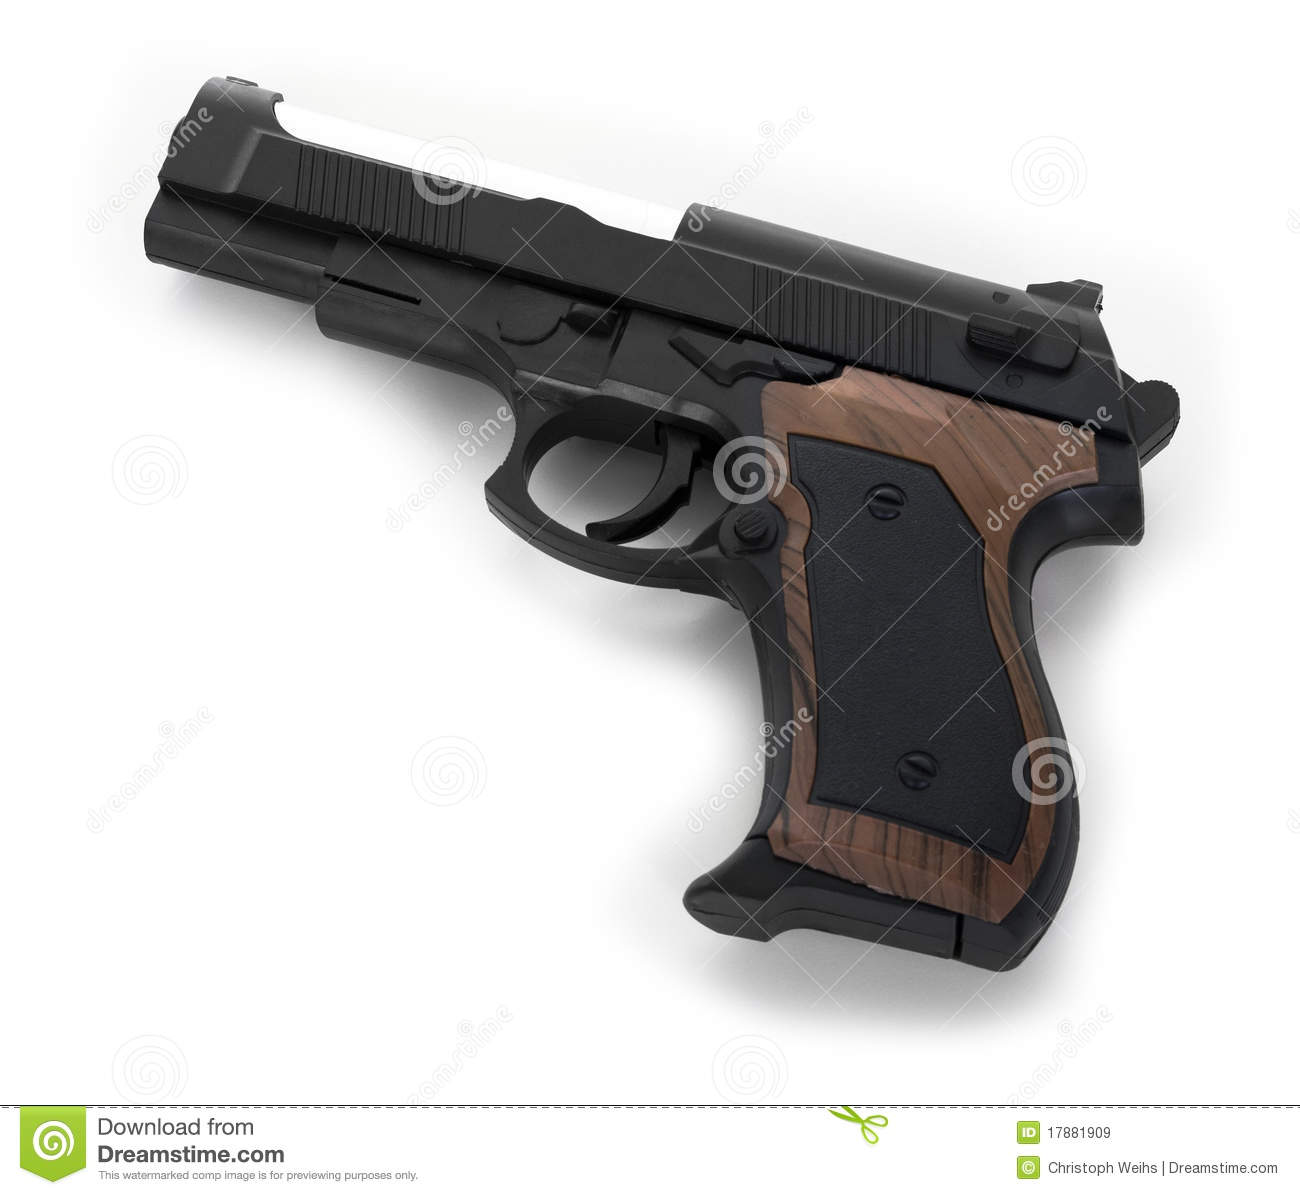 gun white background - photo #4